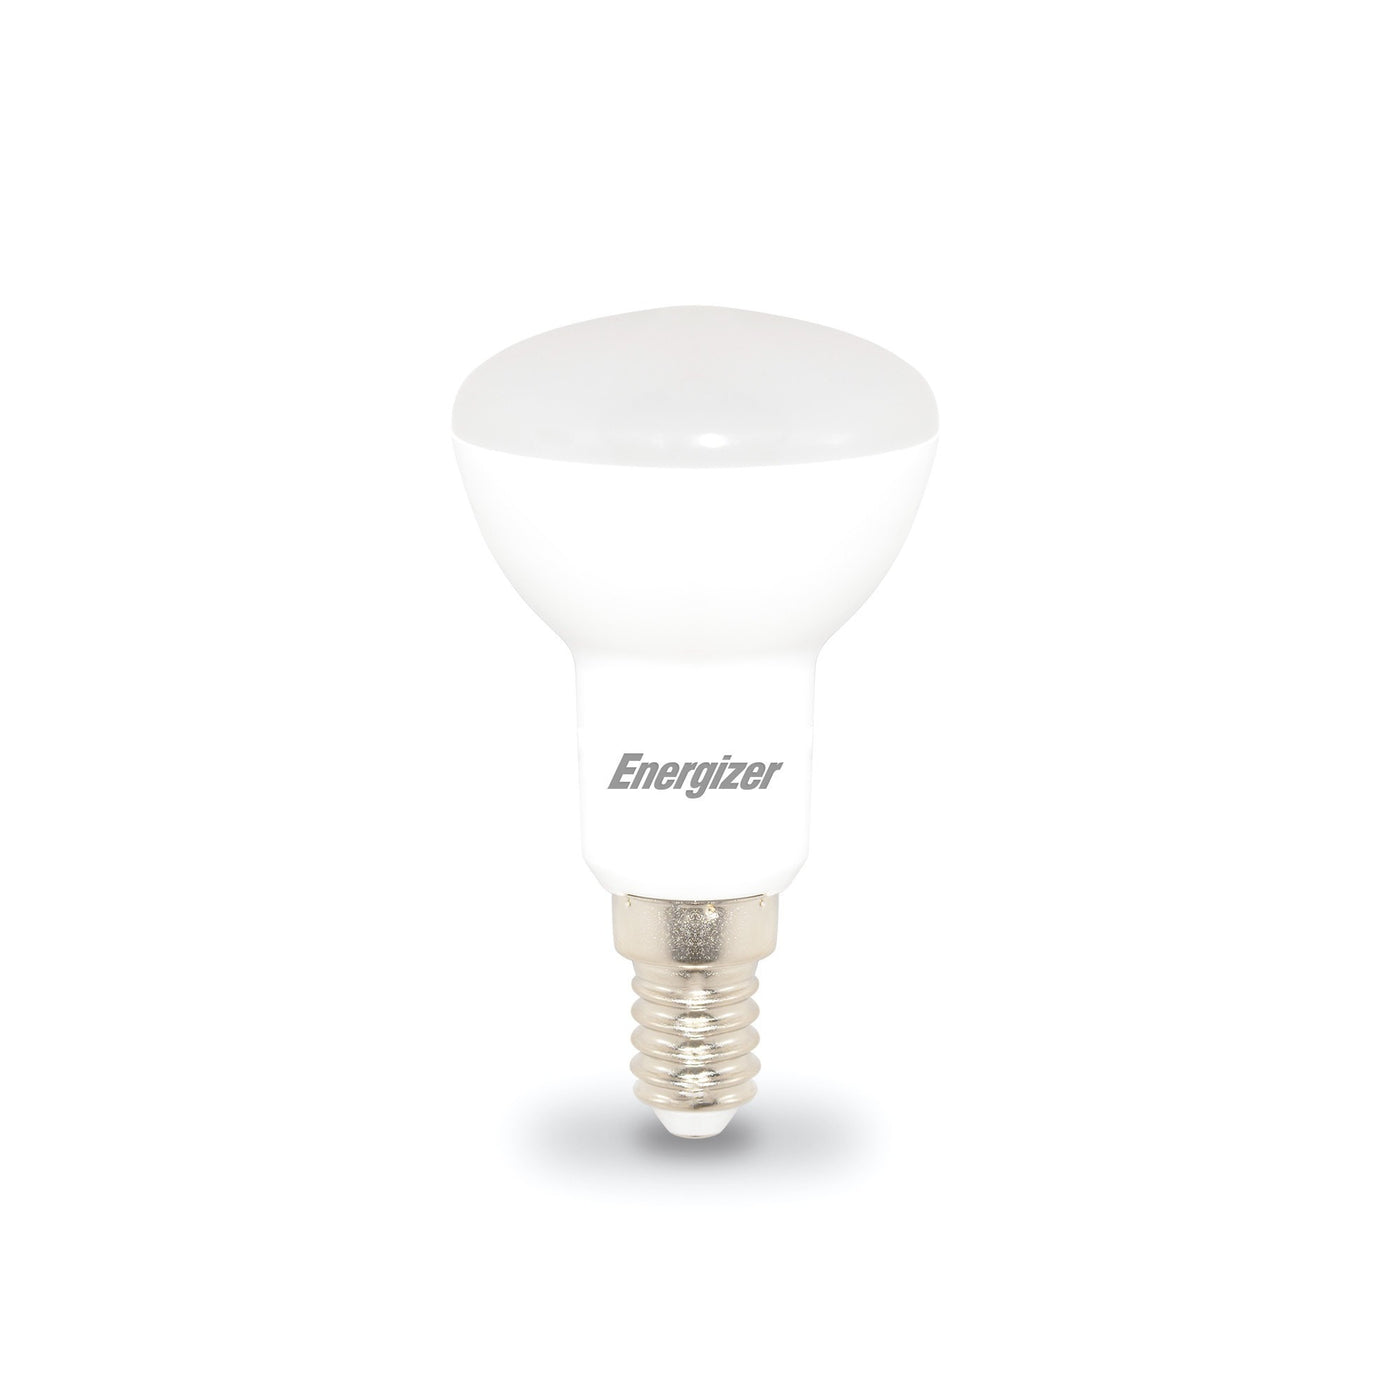 Energizer 6w 40w Non Dim Led Clear Candle Ses E14 Warm: Energizer 6W-40W LED R50 Reflector SES/E14 Non-Dim Warm